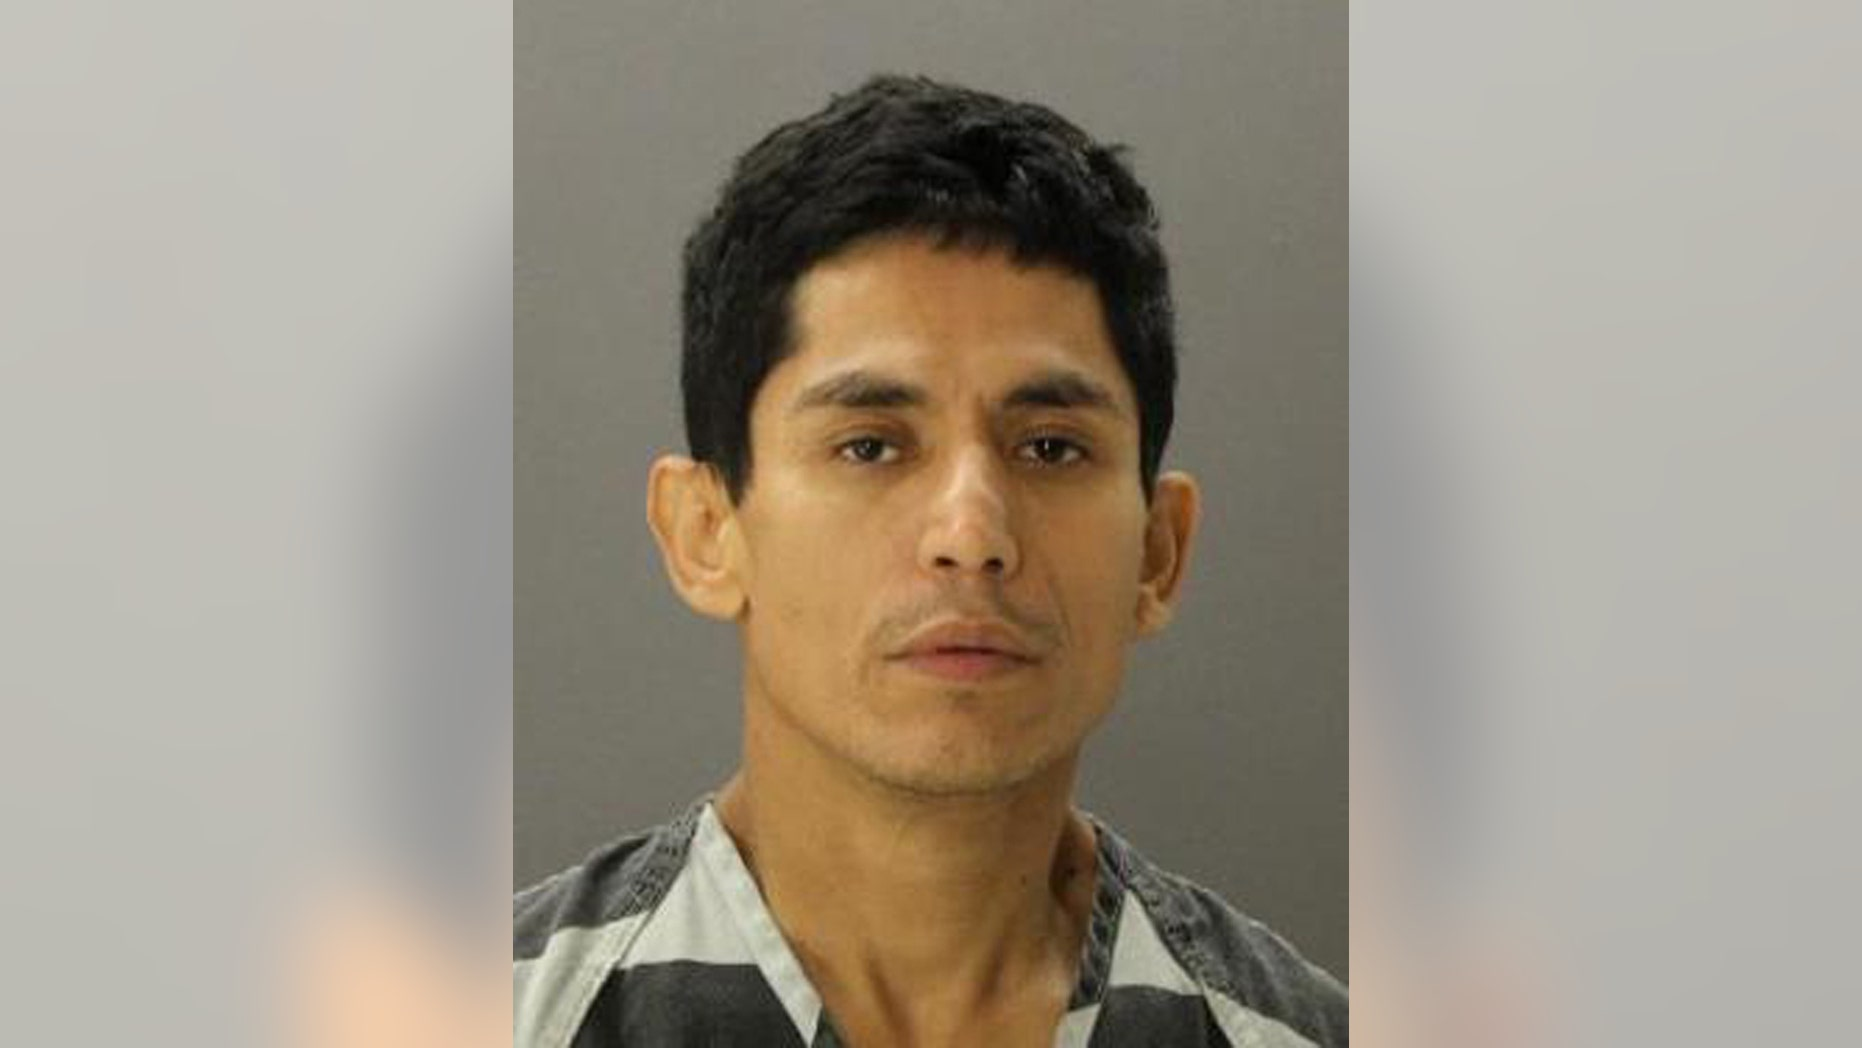 Juan Navarro Rios on a jail booking photo provided by the Dallas County Sheriff's Department.